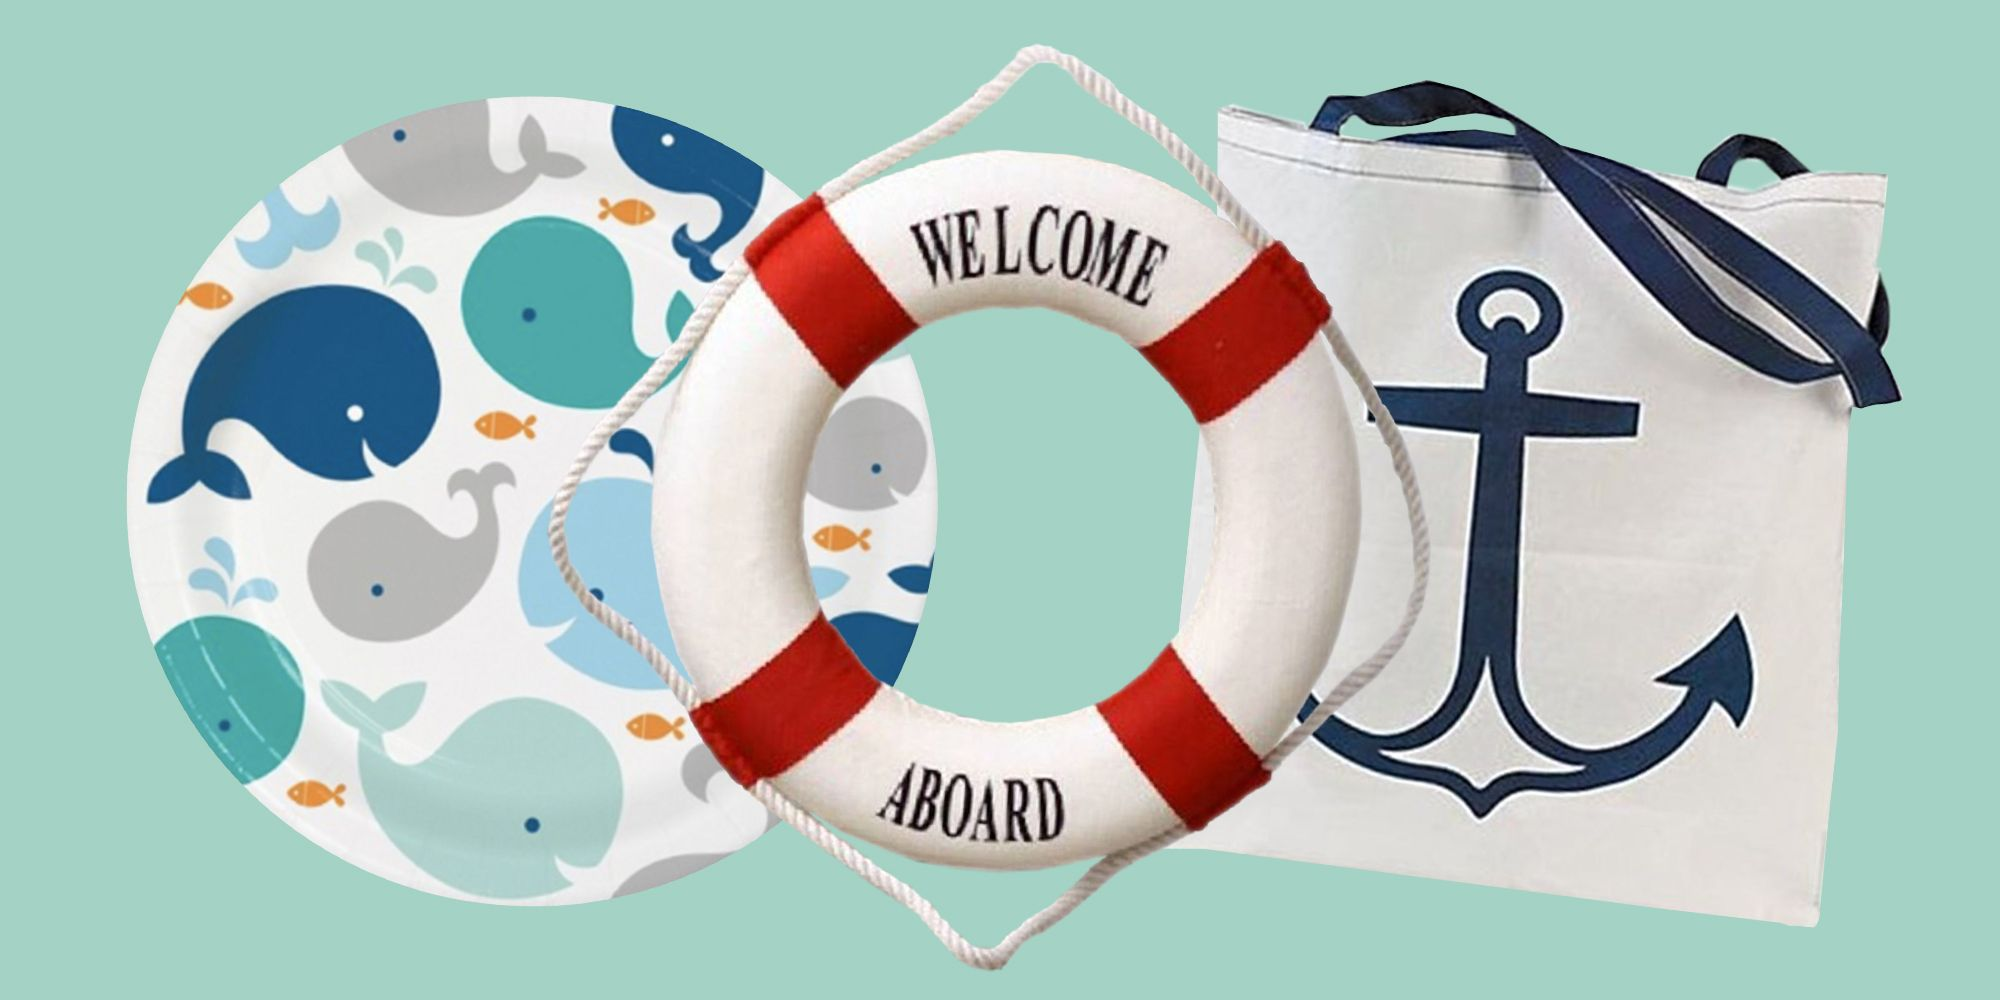 16 Best Nautical Baby Shower Ideas - Sailor-Themed Shower Decorations